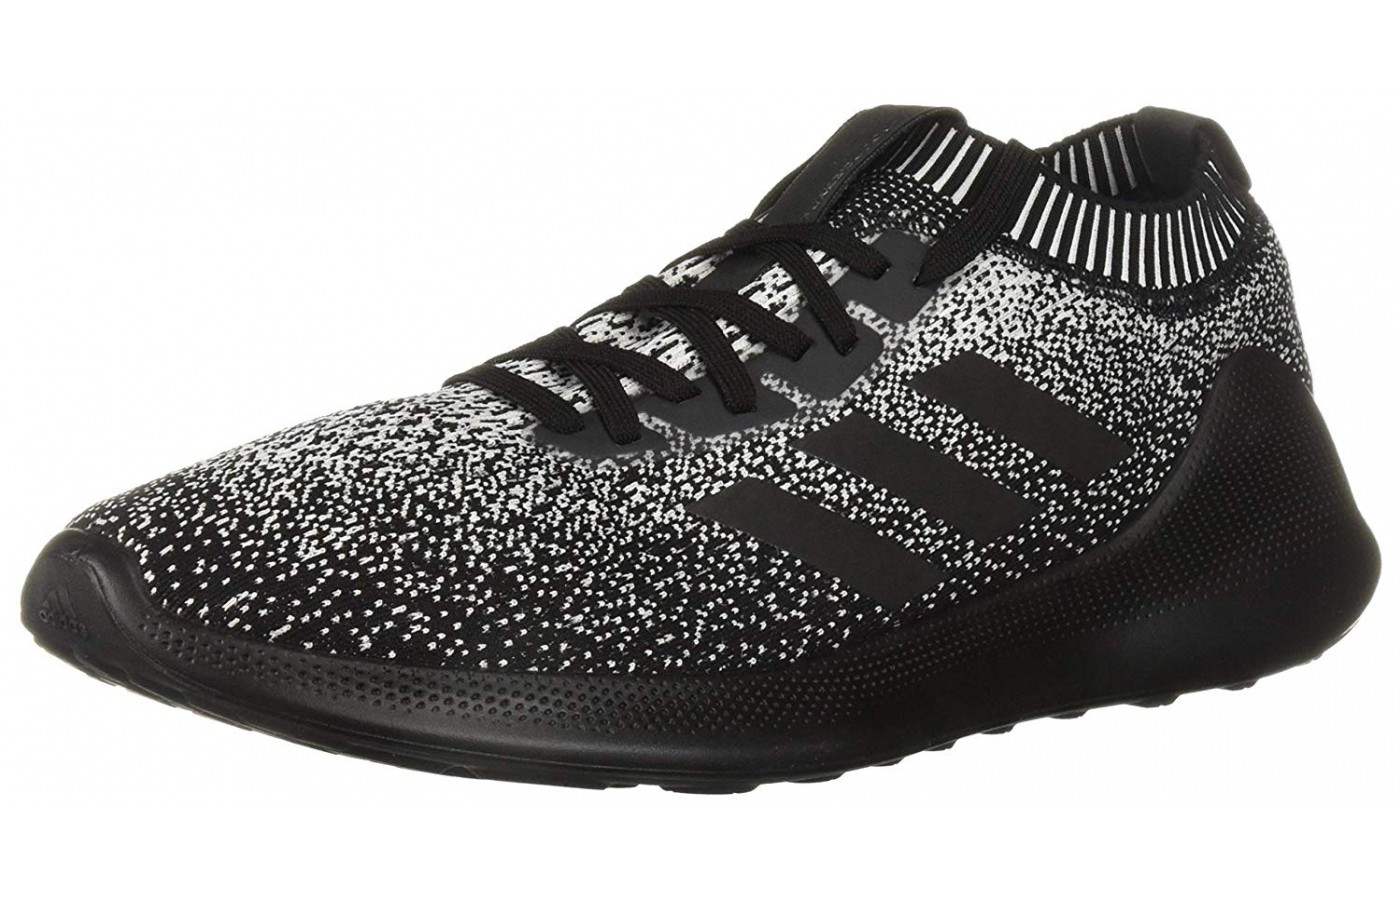 Left side view of Adidas Purebounce+